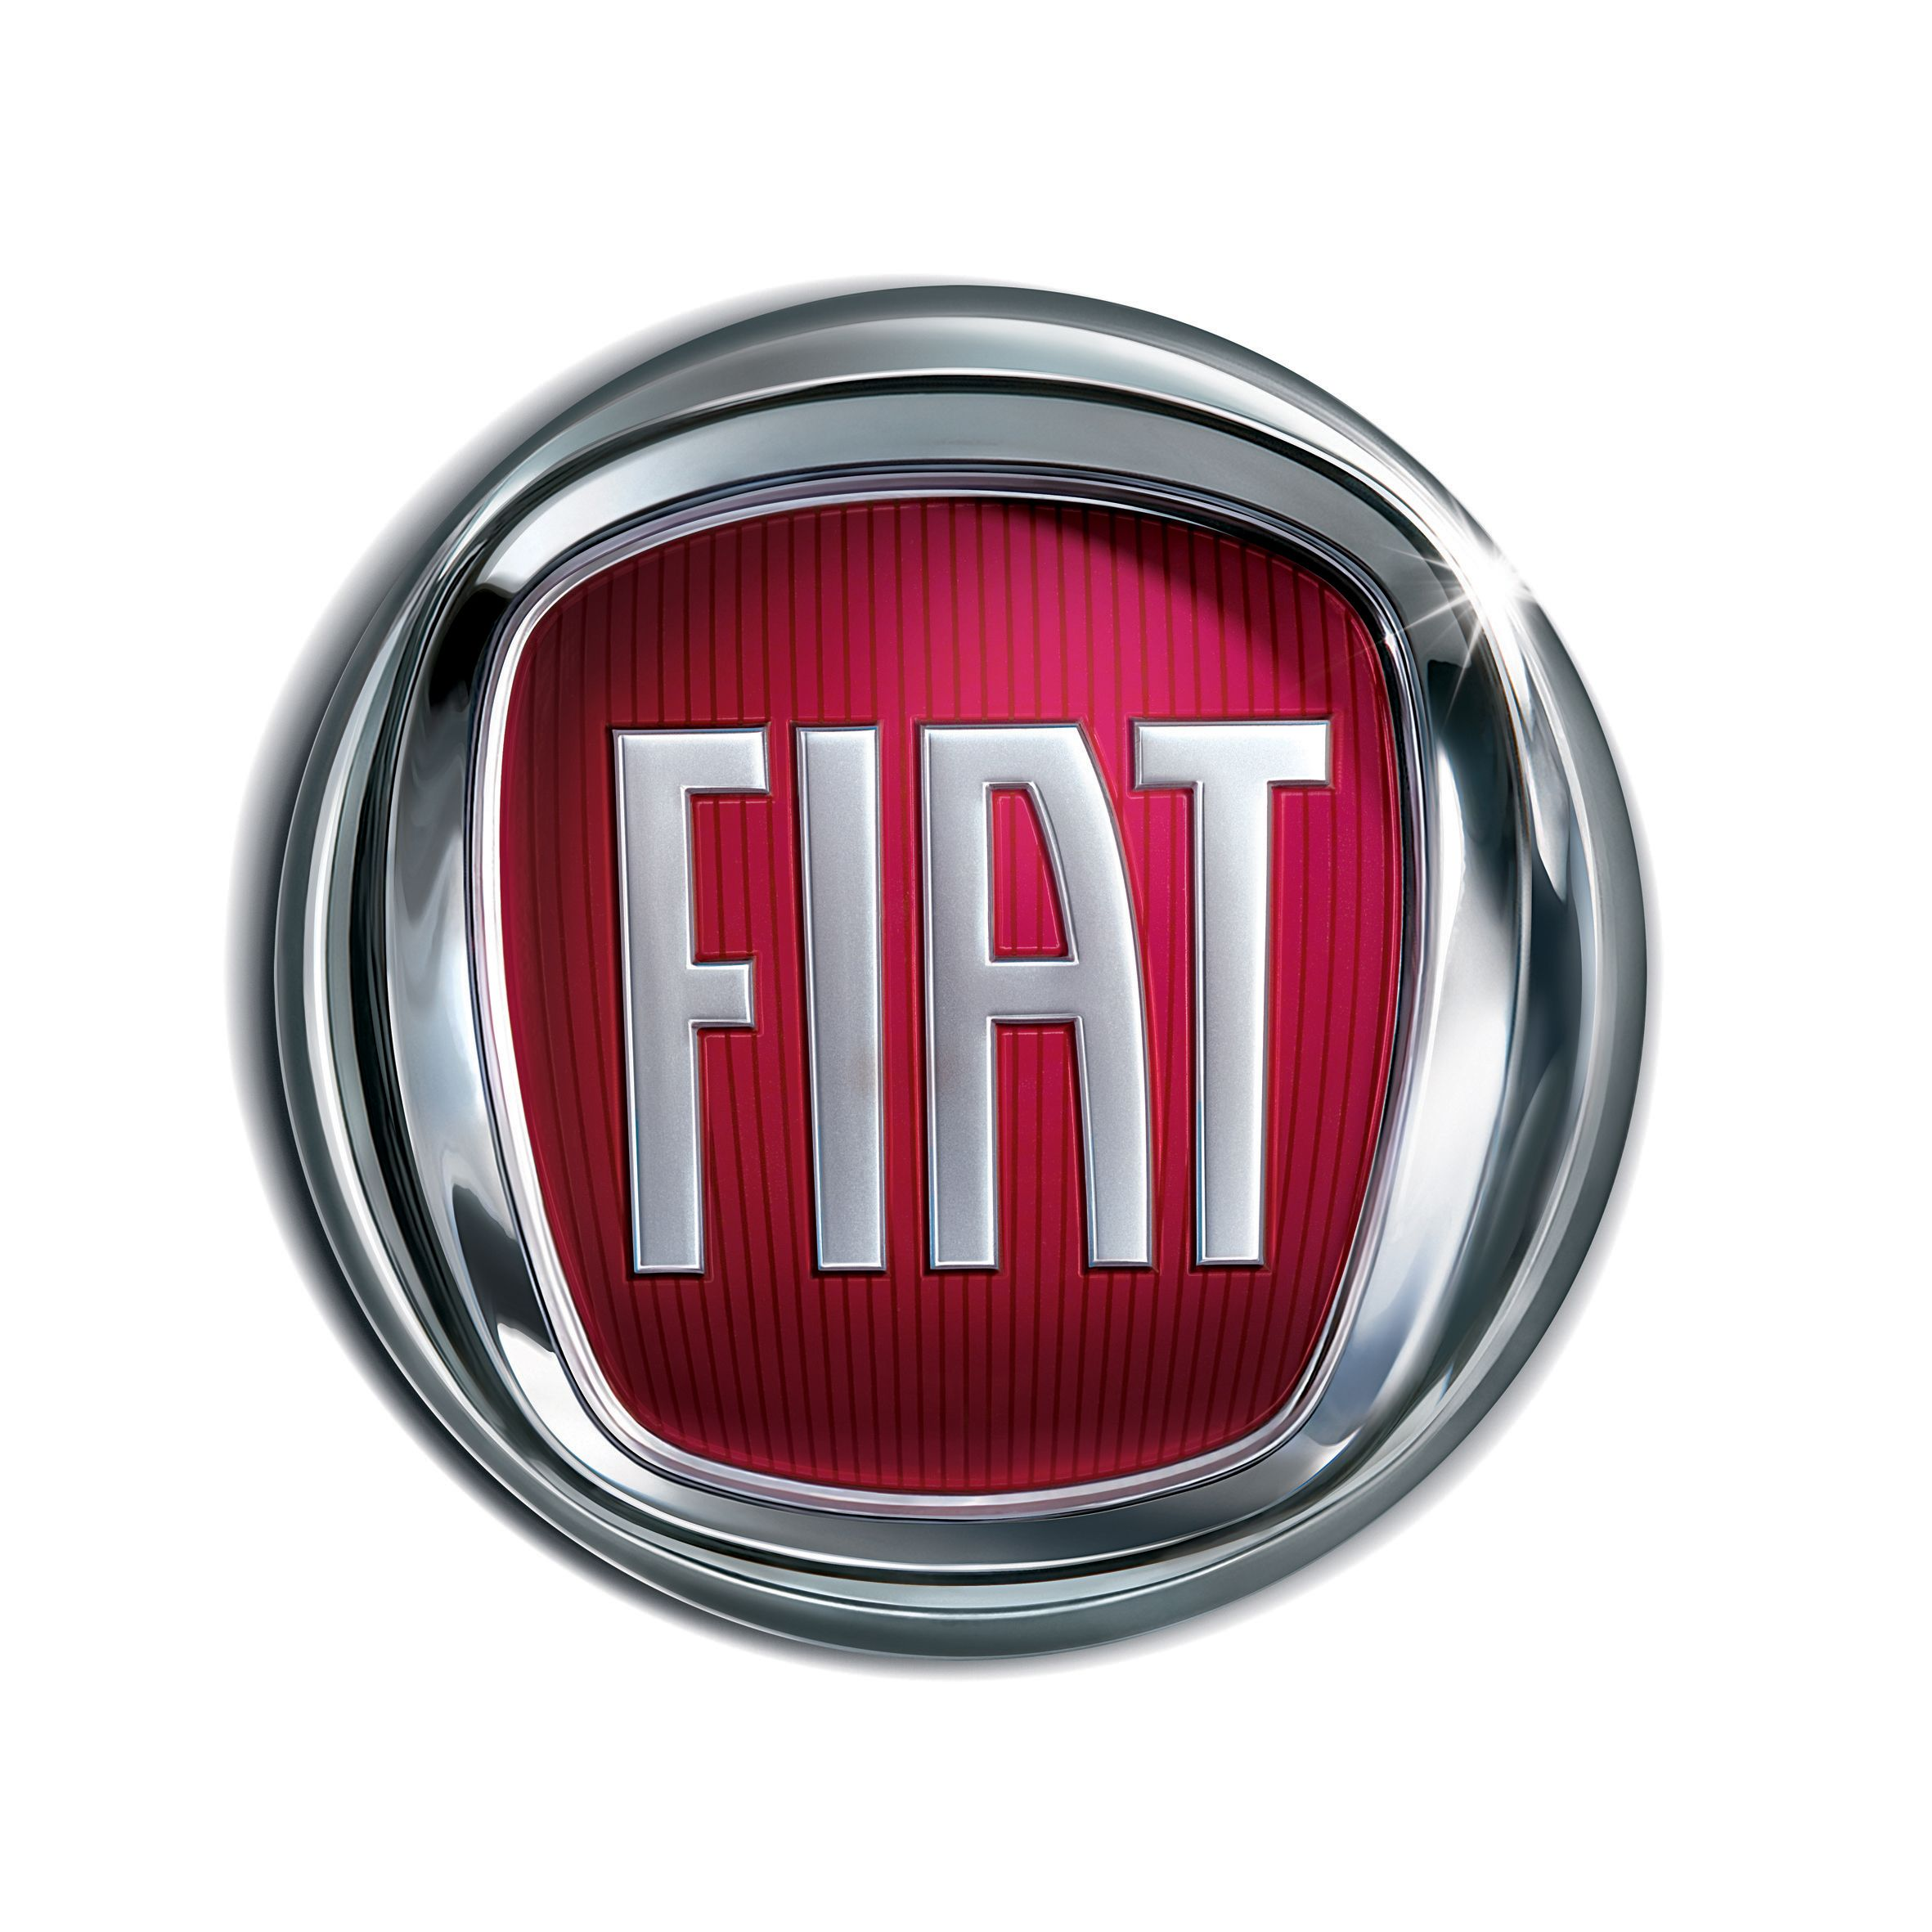 Pin By Denver Auto Show On 2013 Ride Drive Events Fiat Logo Fiat Cars Fiat